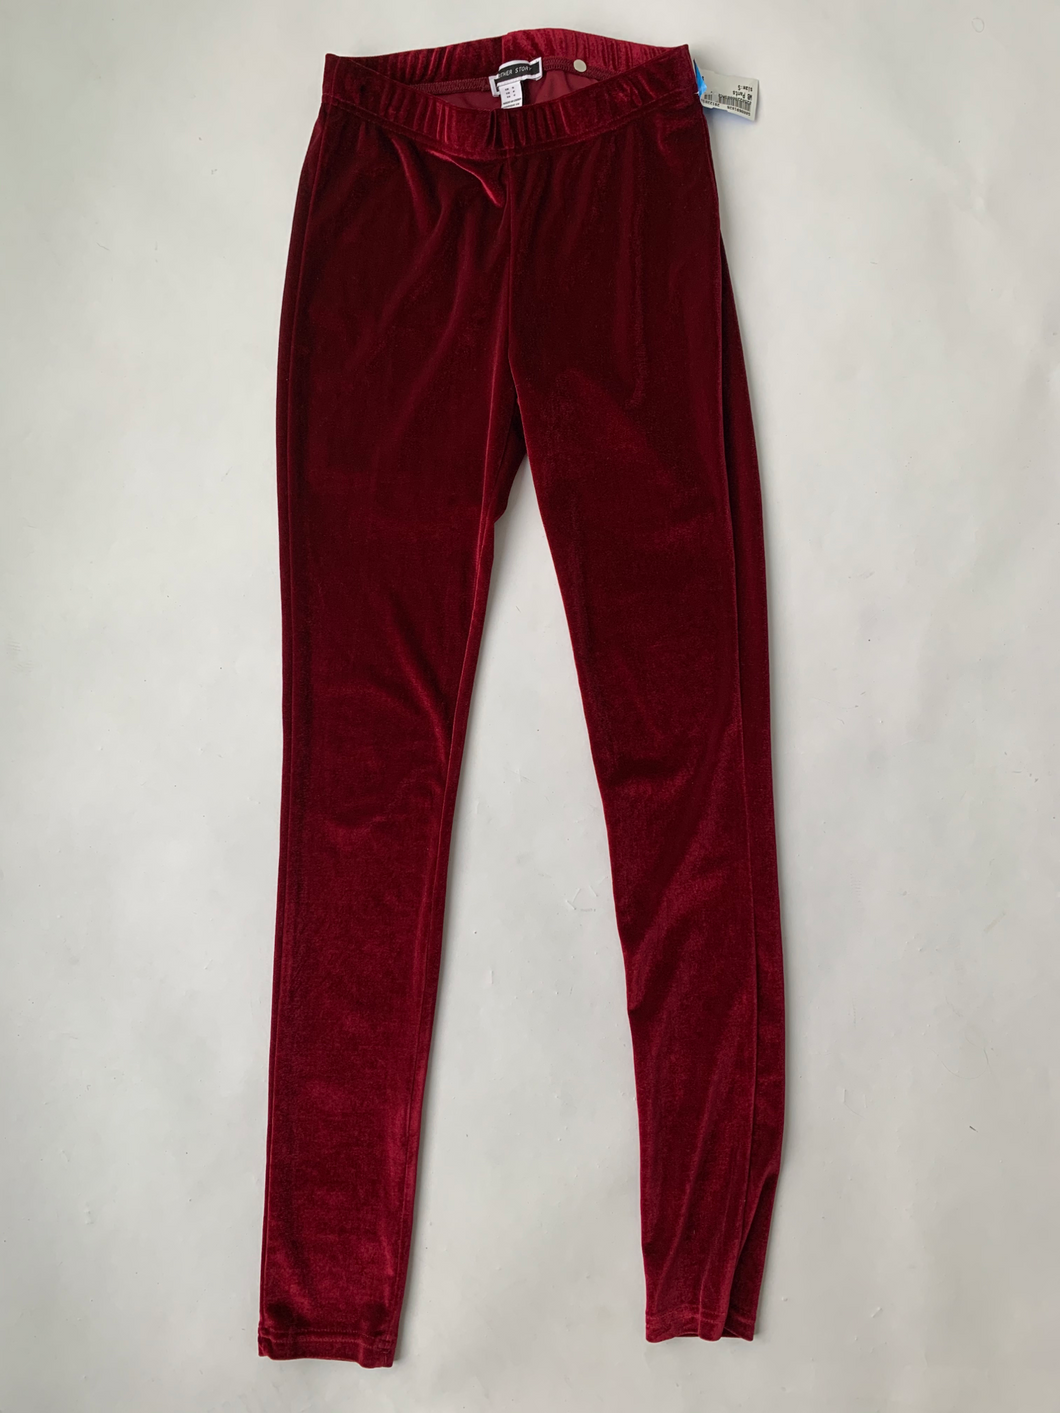 Another Story Velvet Pants Size Small - INSTA